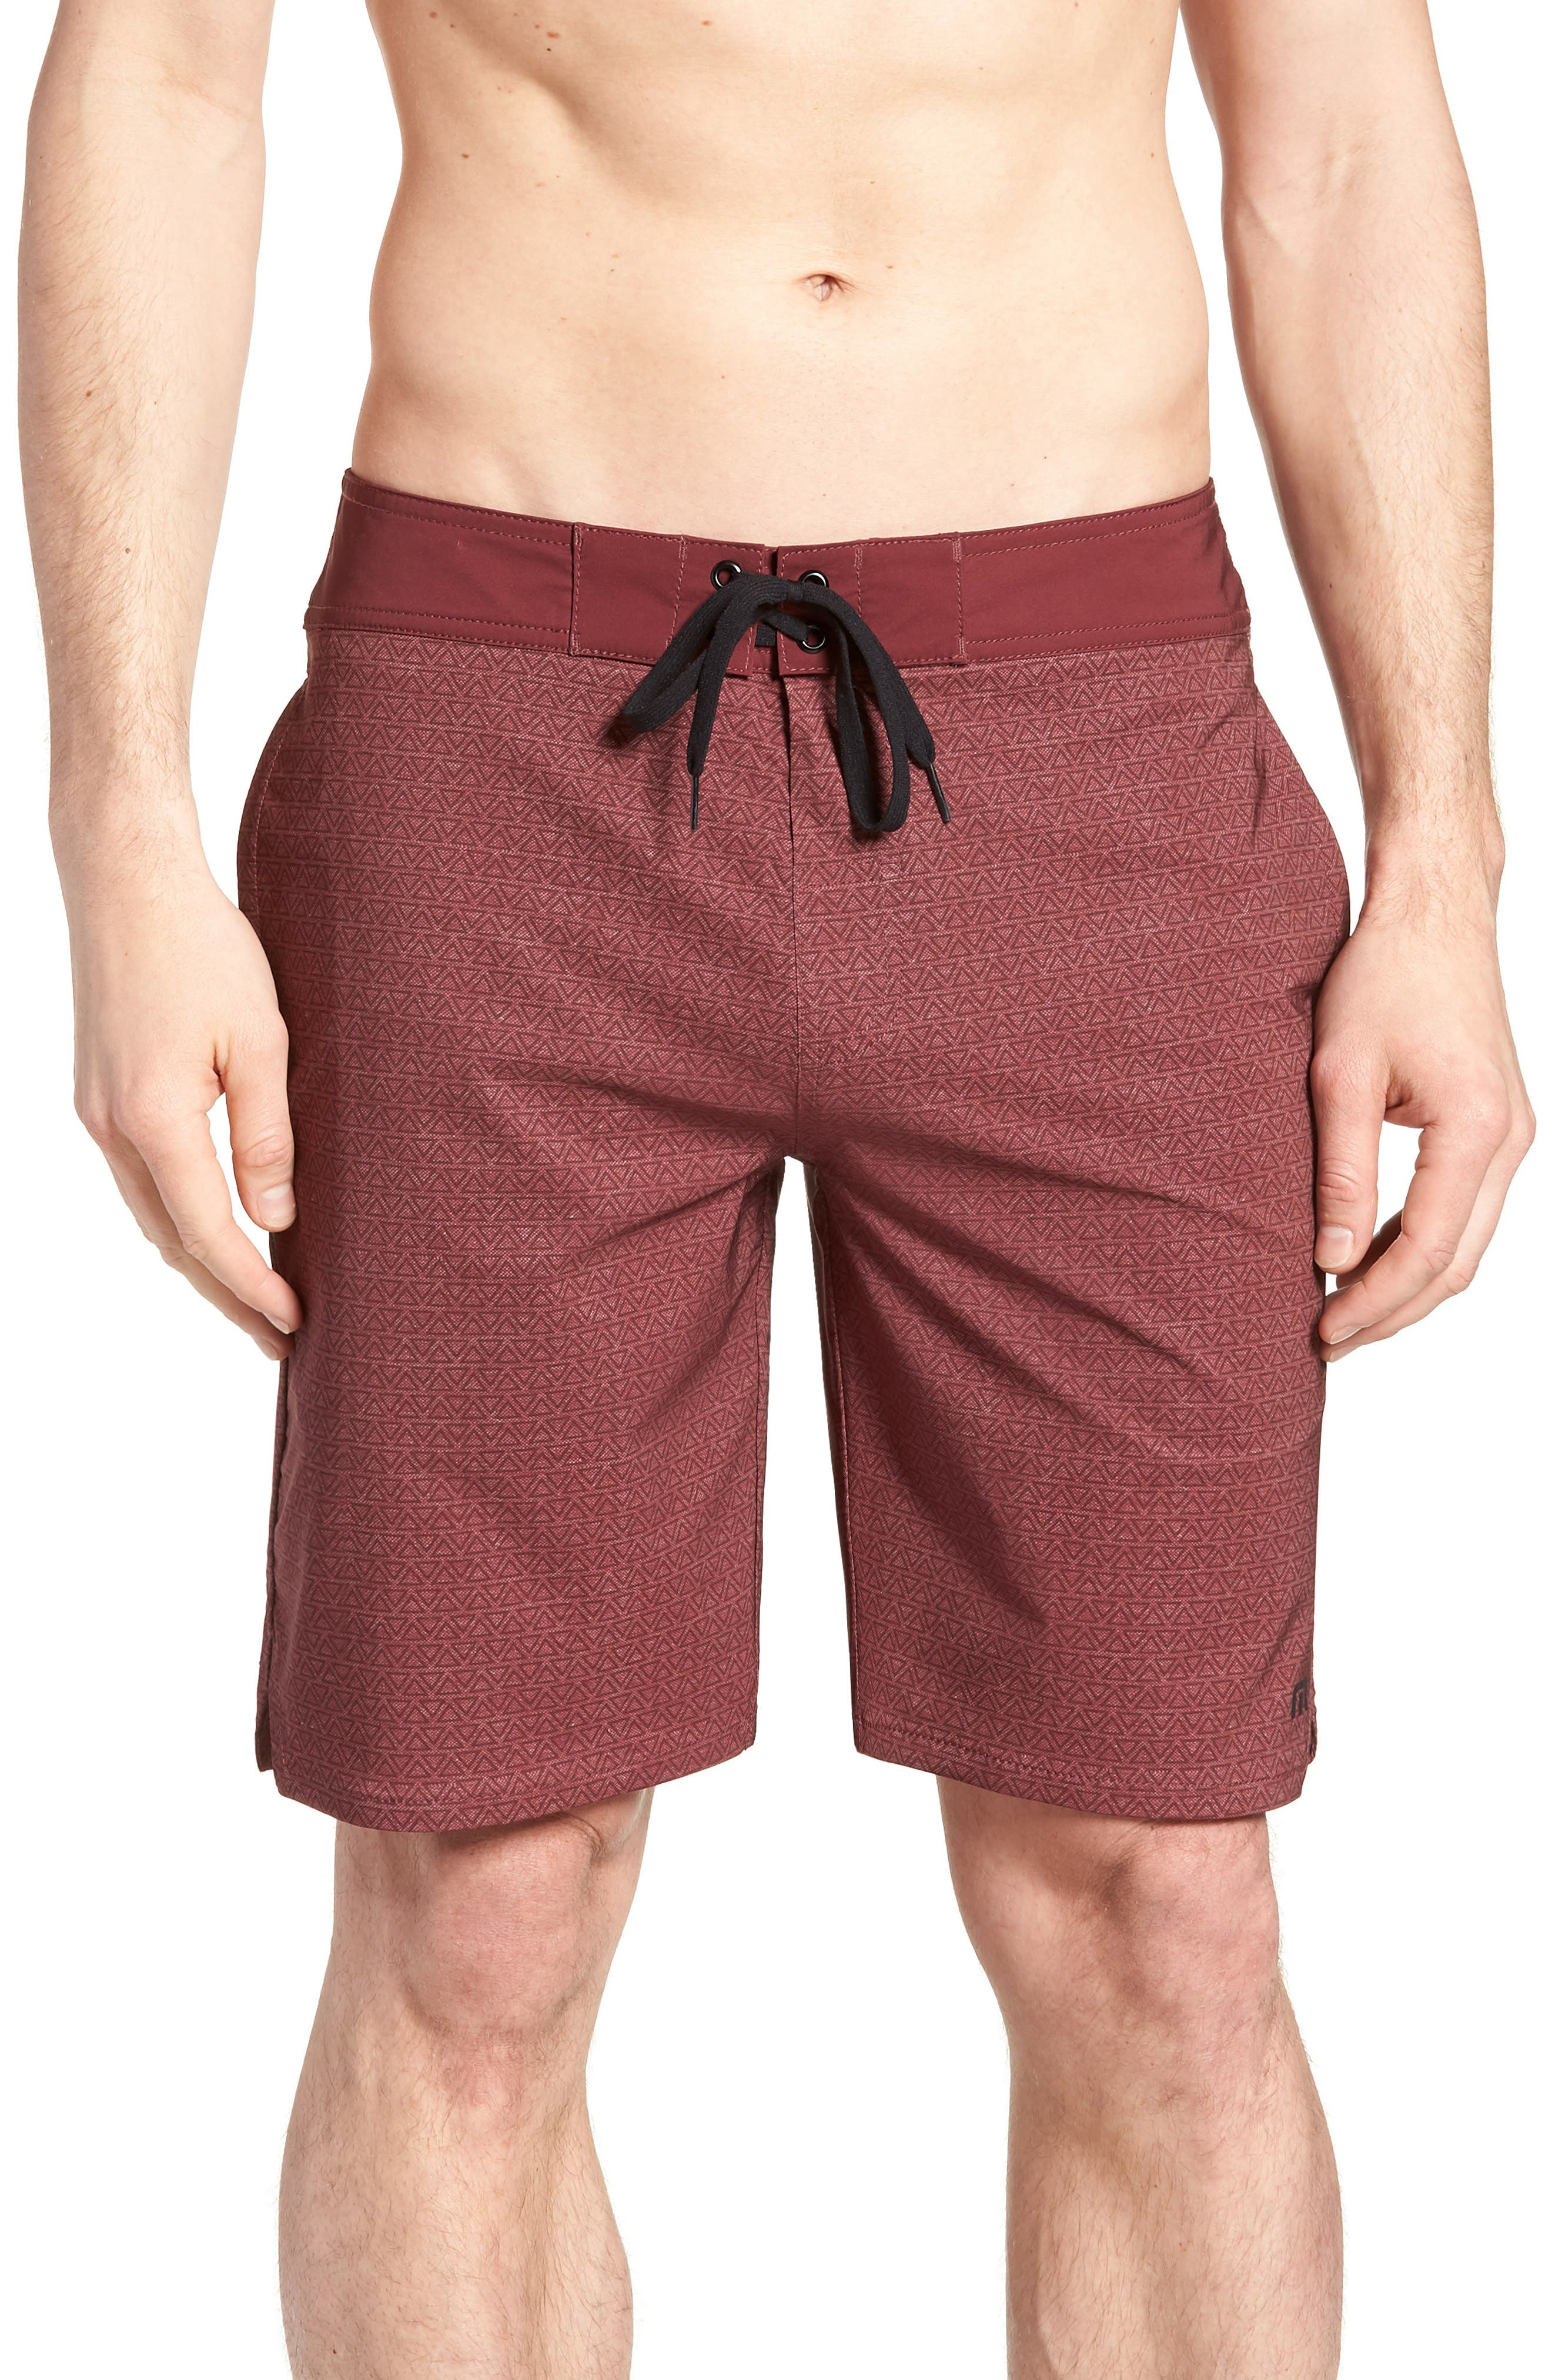 Blanders Regular Fit Board Shorts,                             Main thumbnail 1, color,                             930